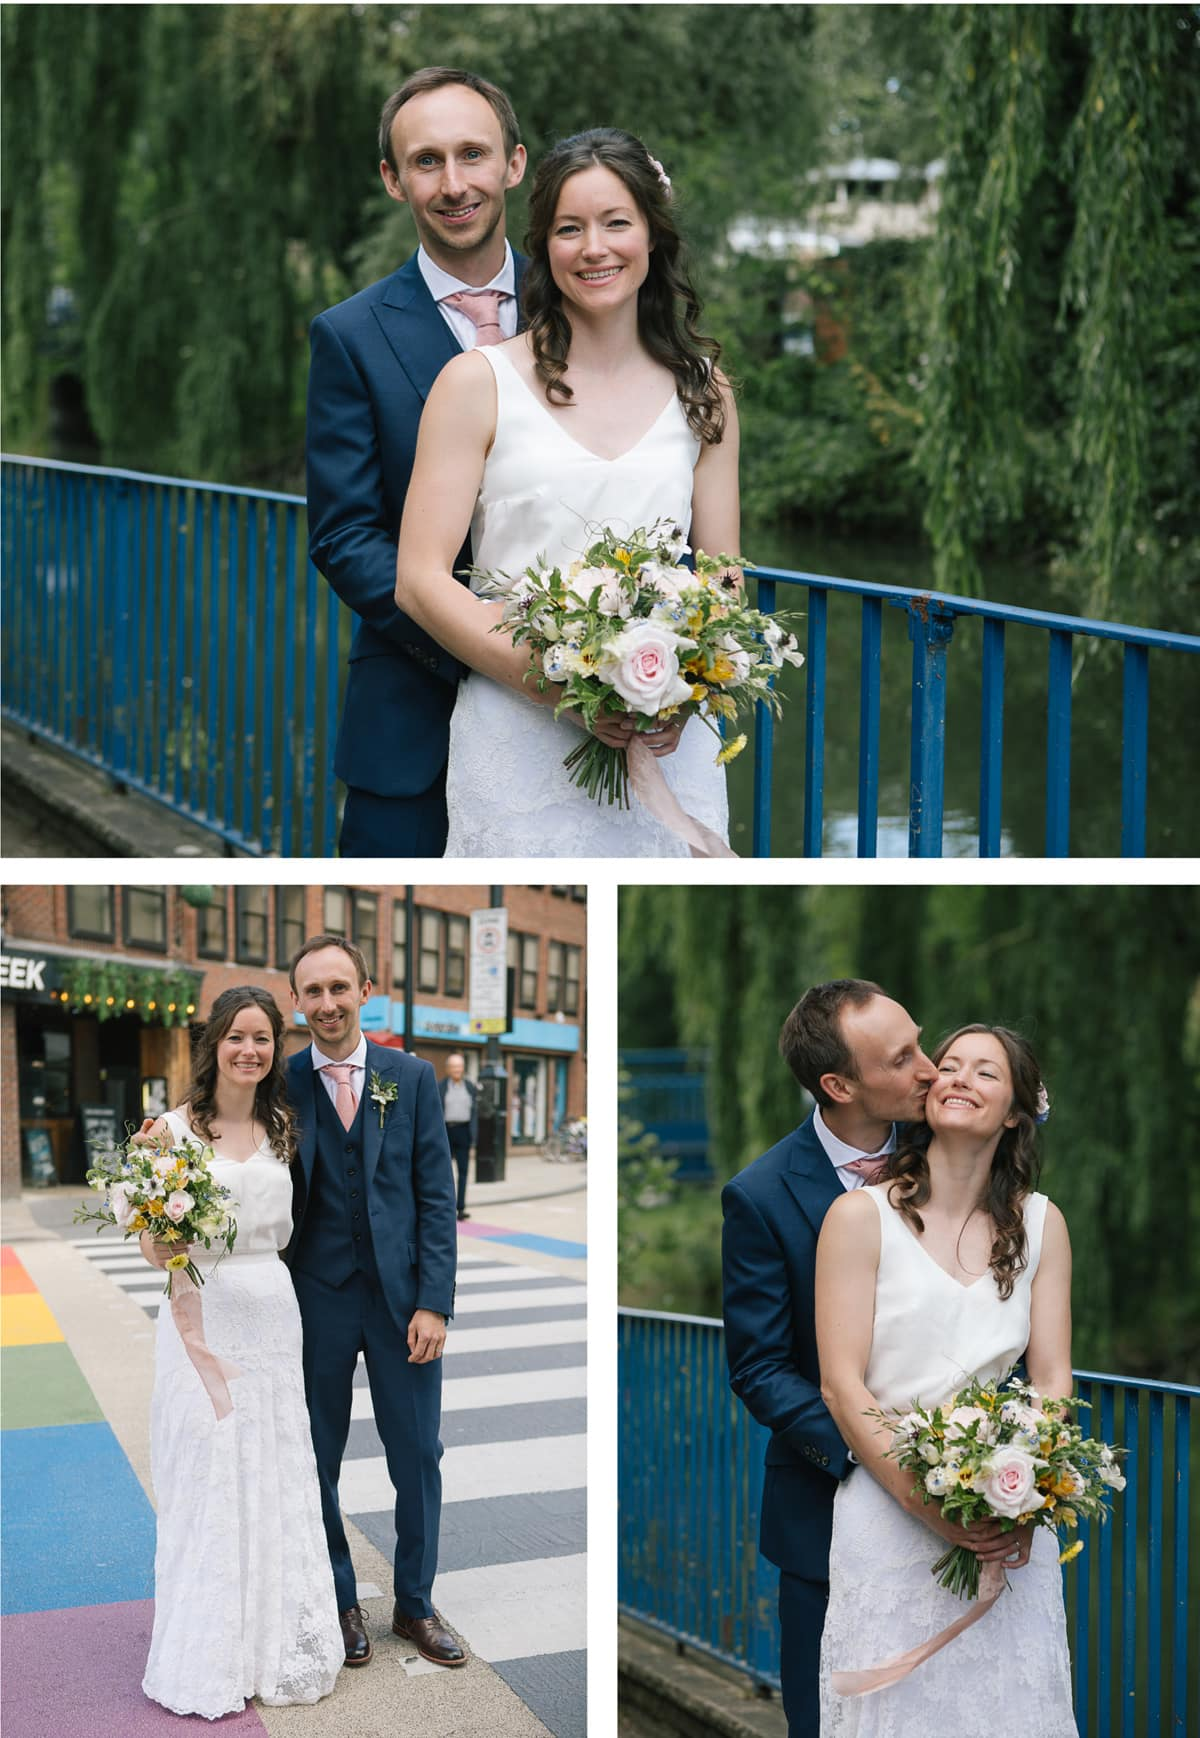 Couple's portraits on a bridge with blue railings by the river